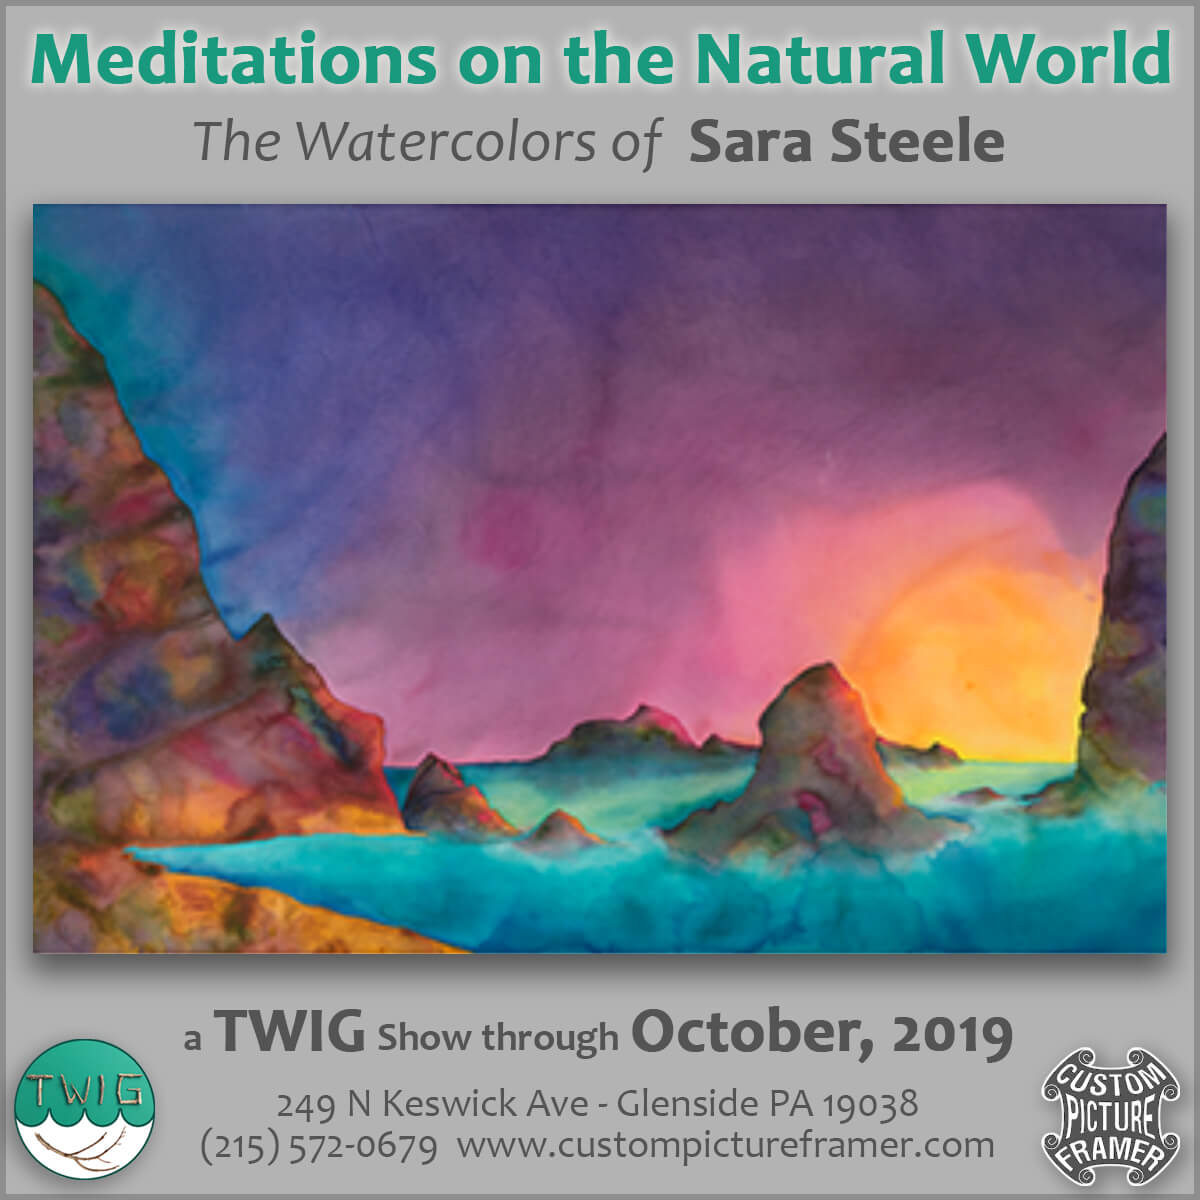 Meditations on the Natural World - The Watercolors of Sara Steele @ Custom Picture Framer